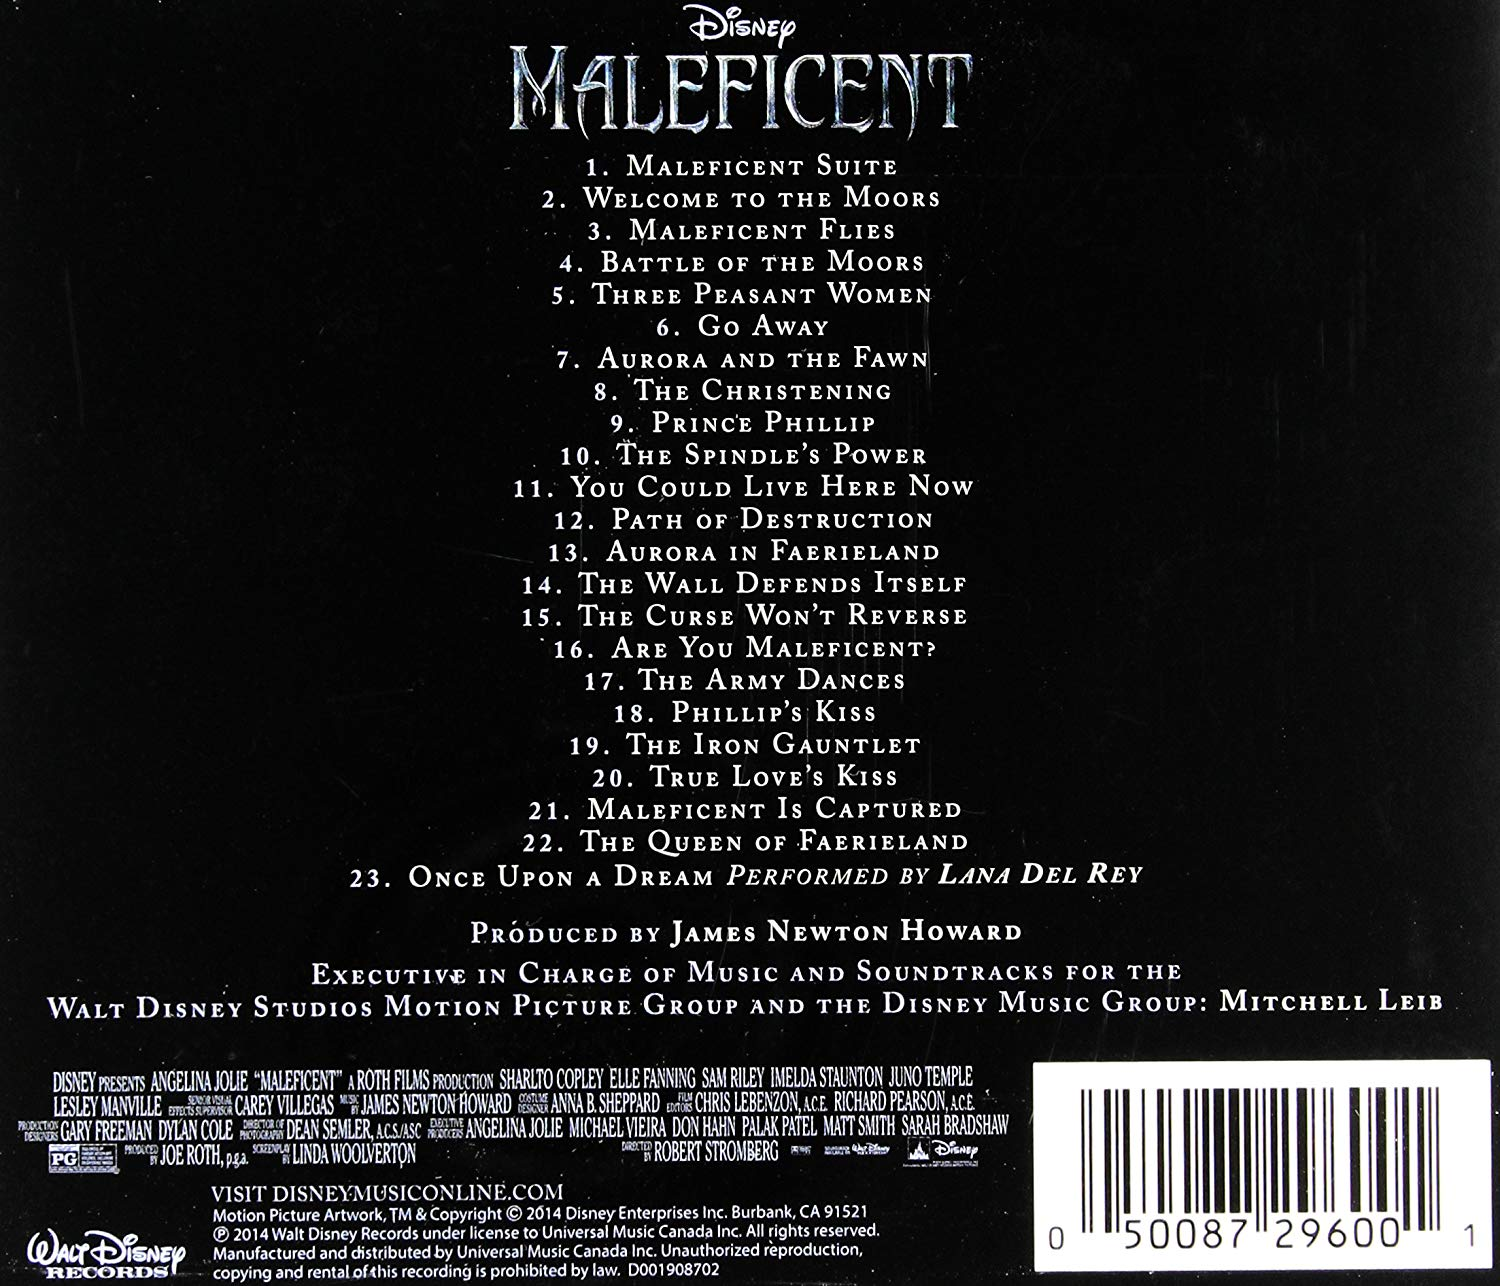 Maleficent (Original Motion Picture Soundtrack) - Colonna sonora Maleficent